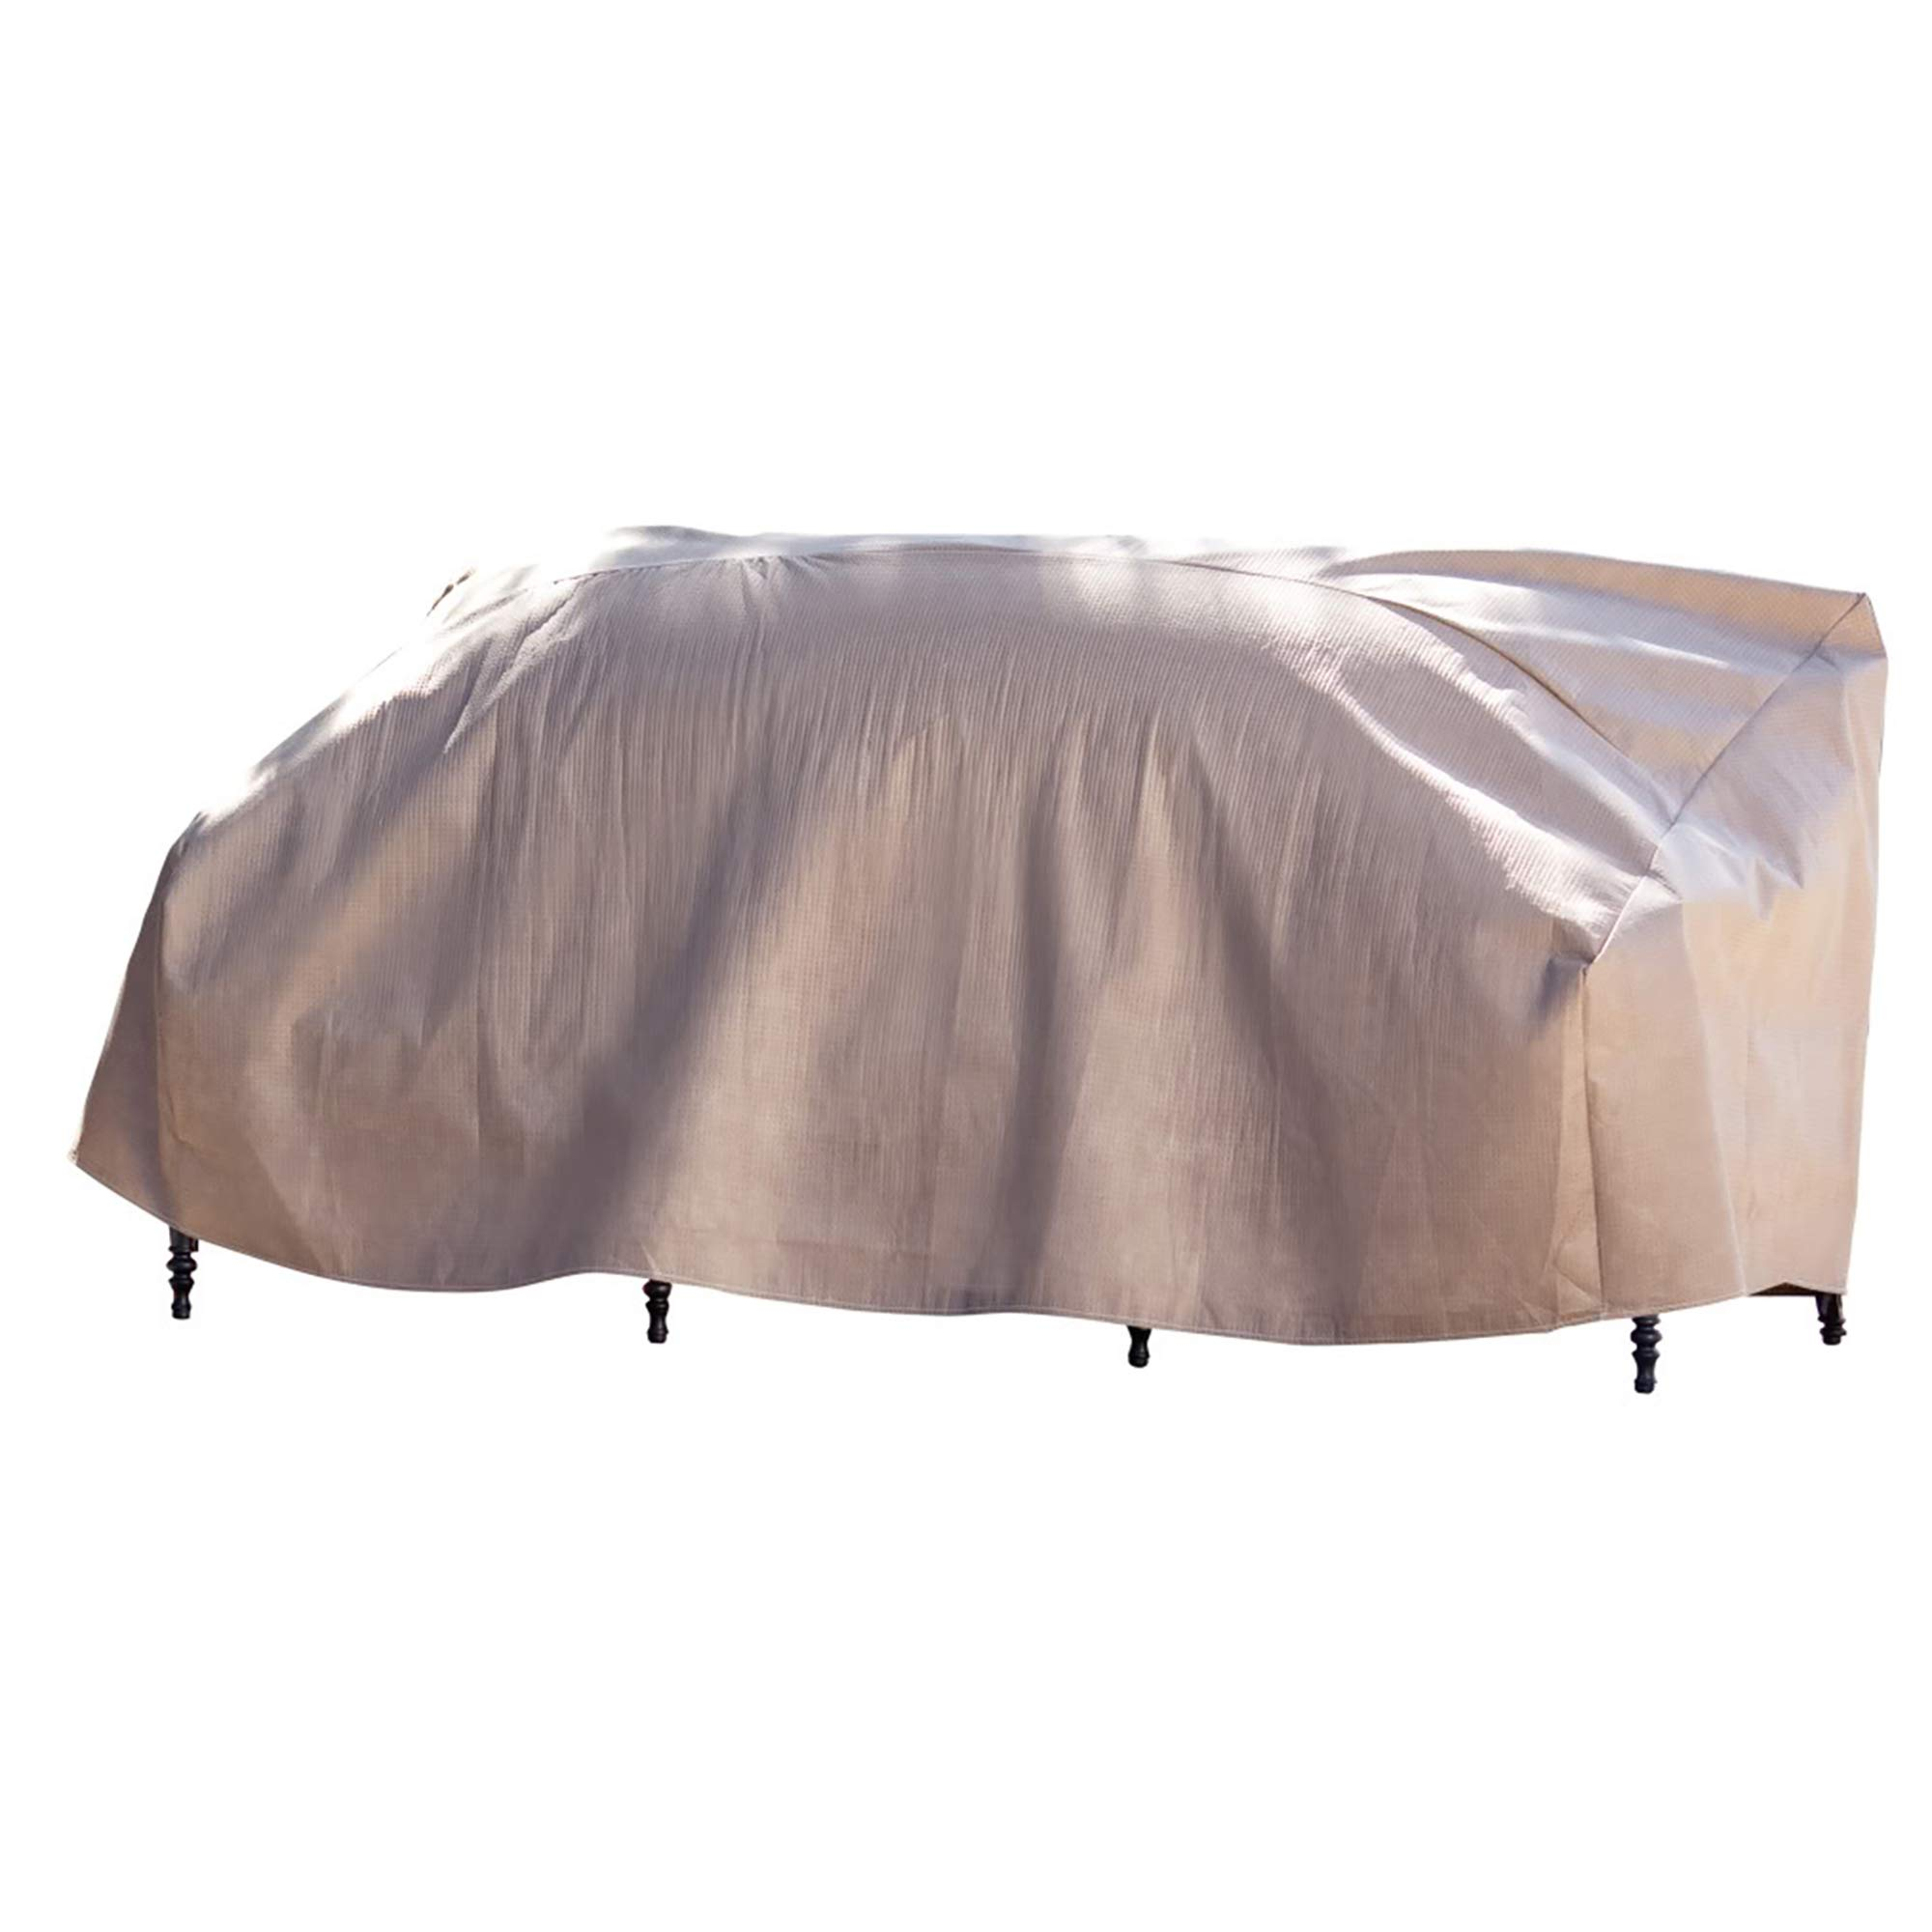 Duck Covers Elite Patio Sofa Cover with Inflatable Airbag to Prevent Pooling, 79-Inch